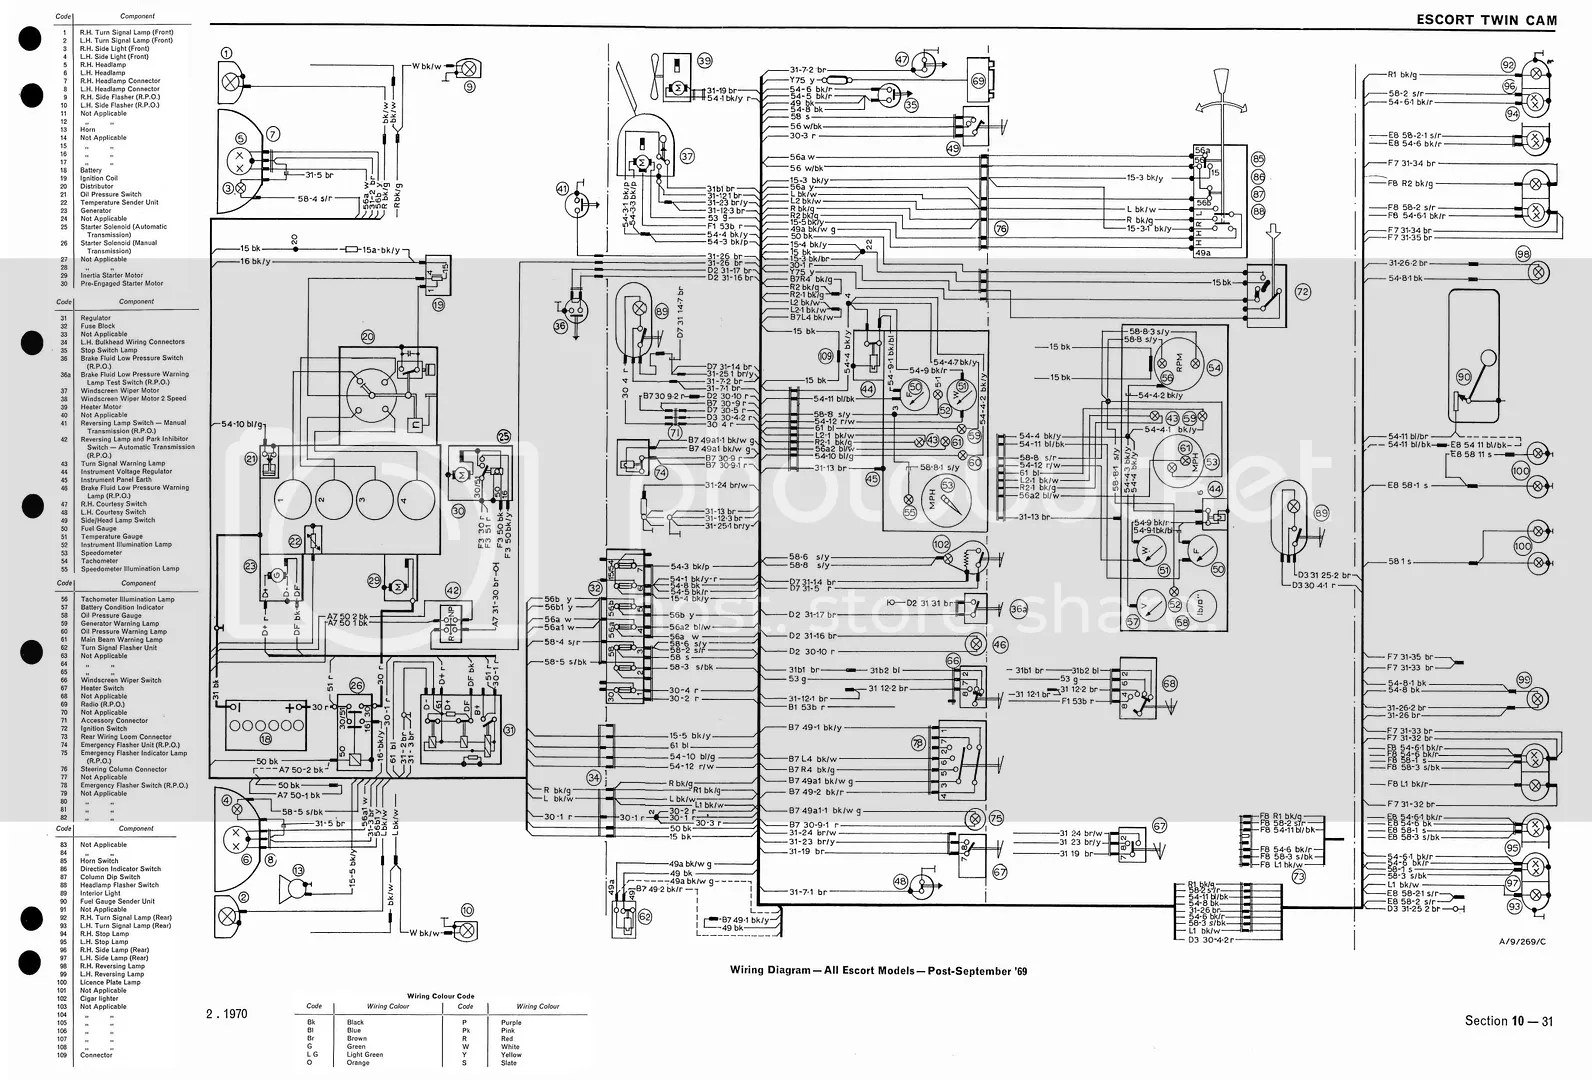 Fiat 500 Fuse Box Location. Fiat. Wiring Diagram Images